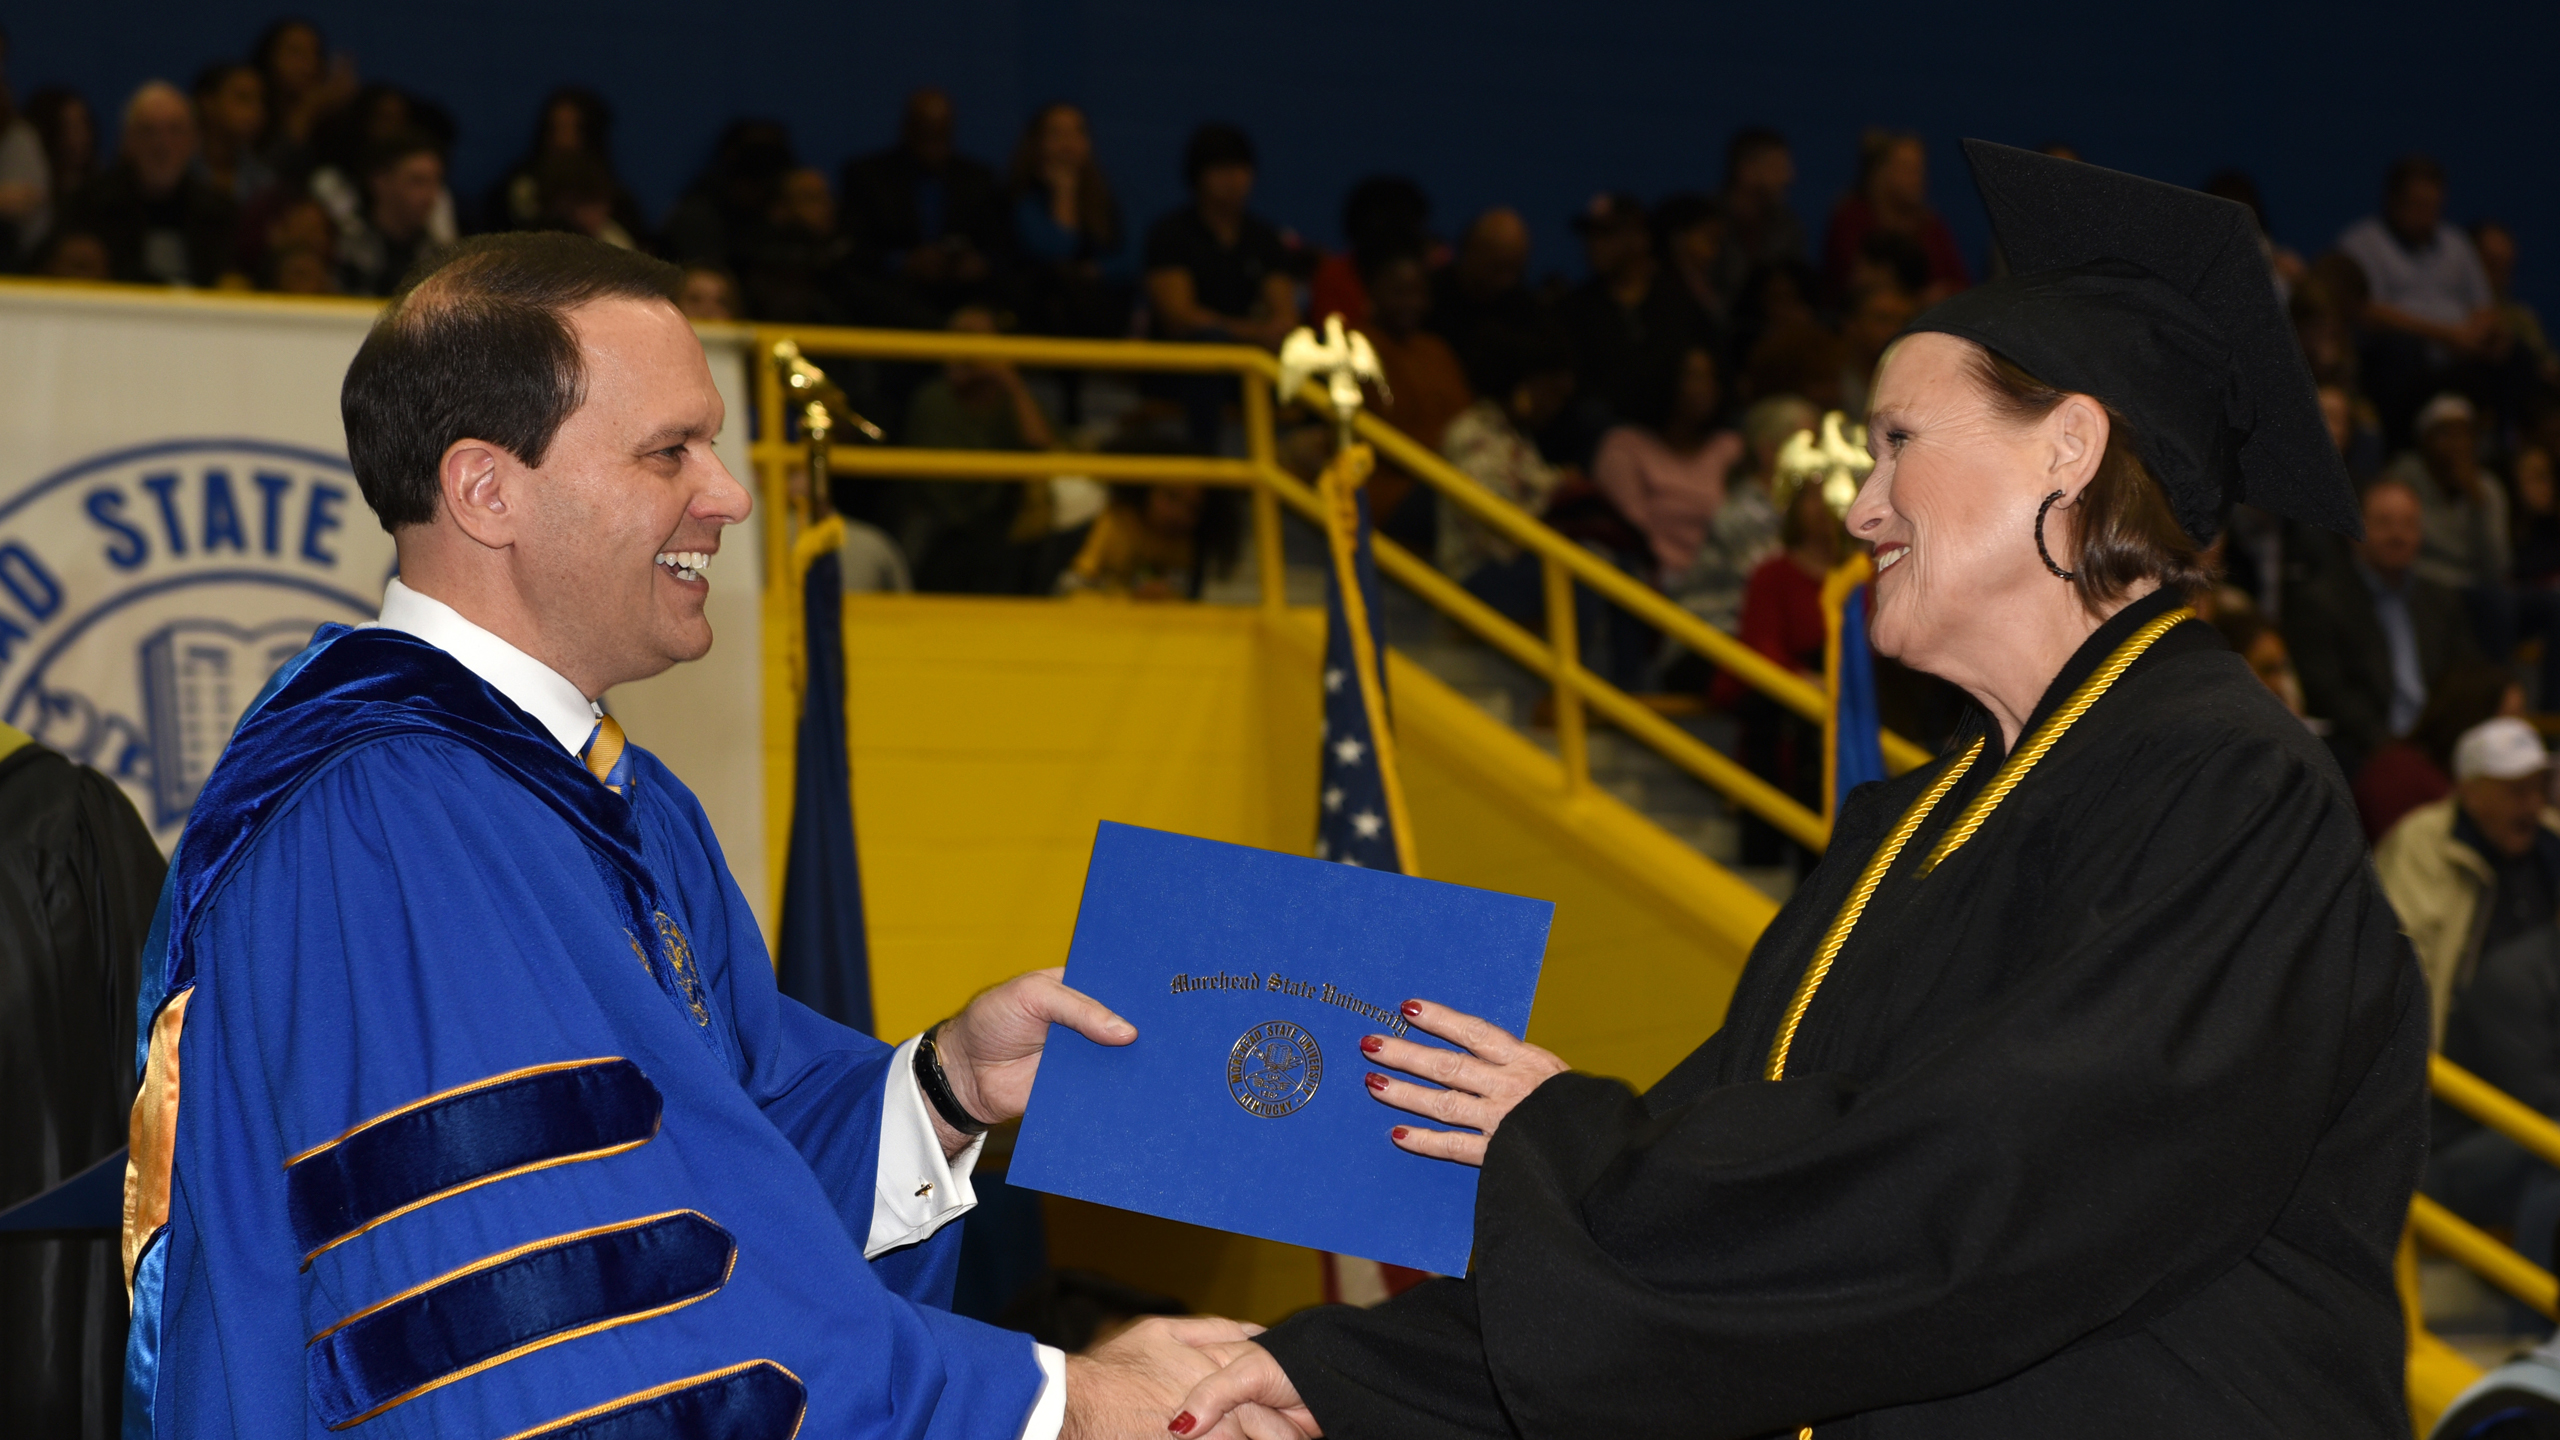 A student receives her diploma from MSU President Jay Morgan